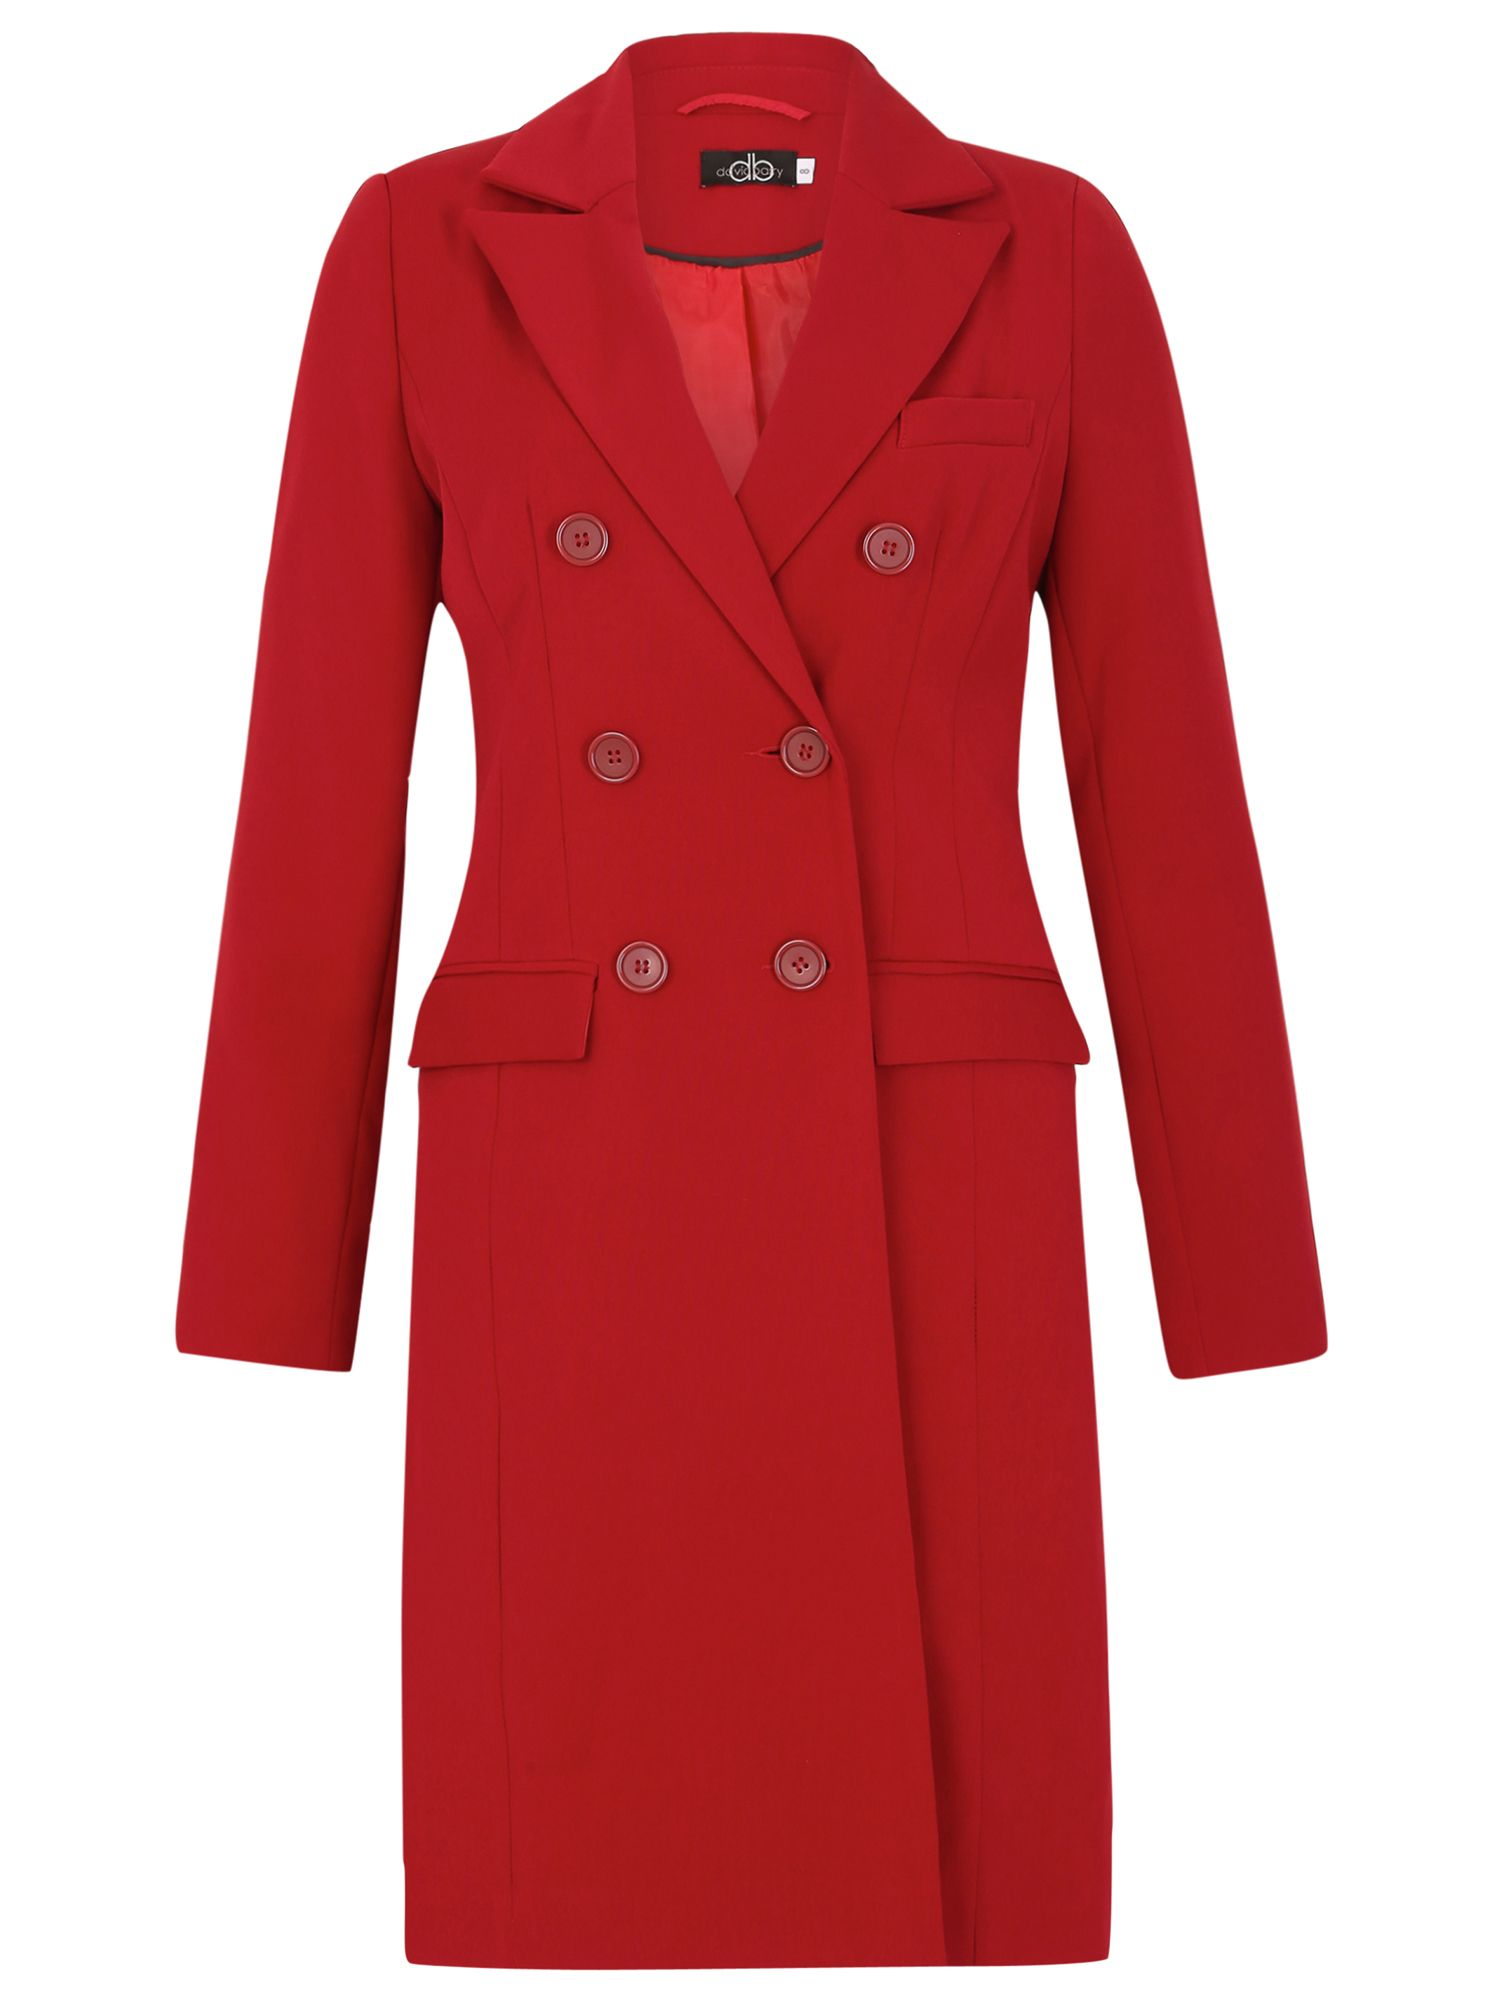 David Barry DB Lined Coat, Red